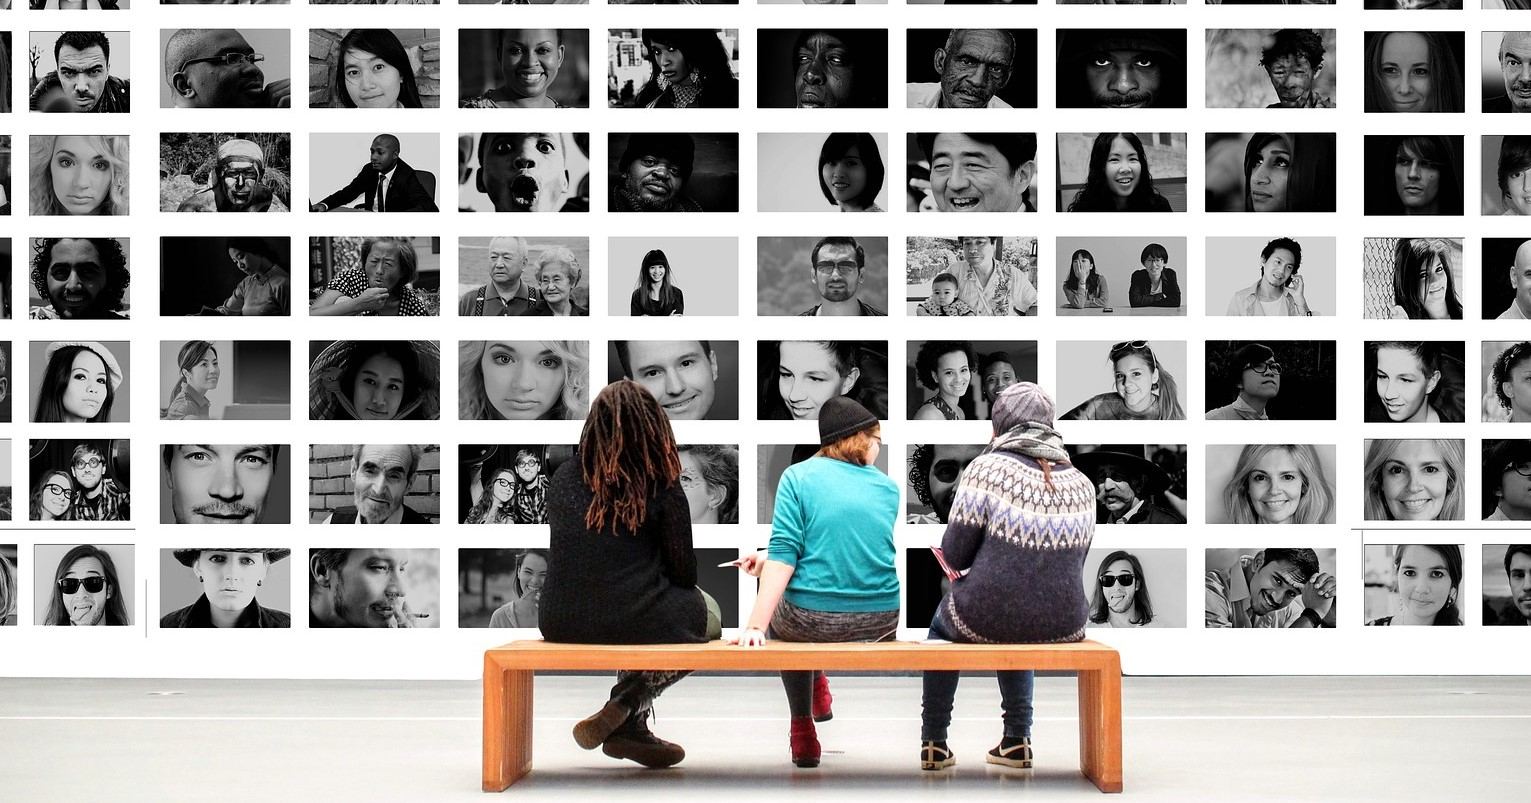 Image: Wall of black and white pics of humans making faces